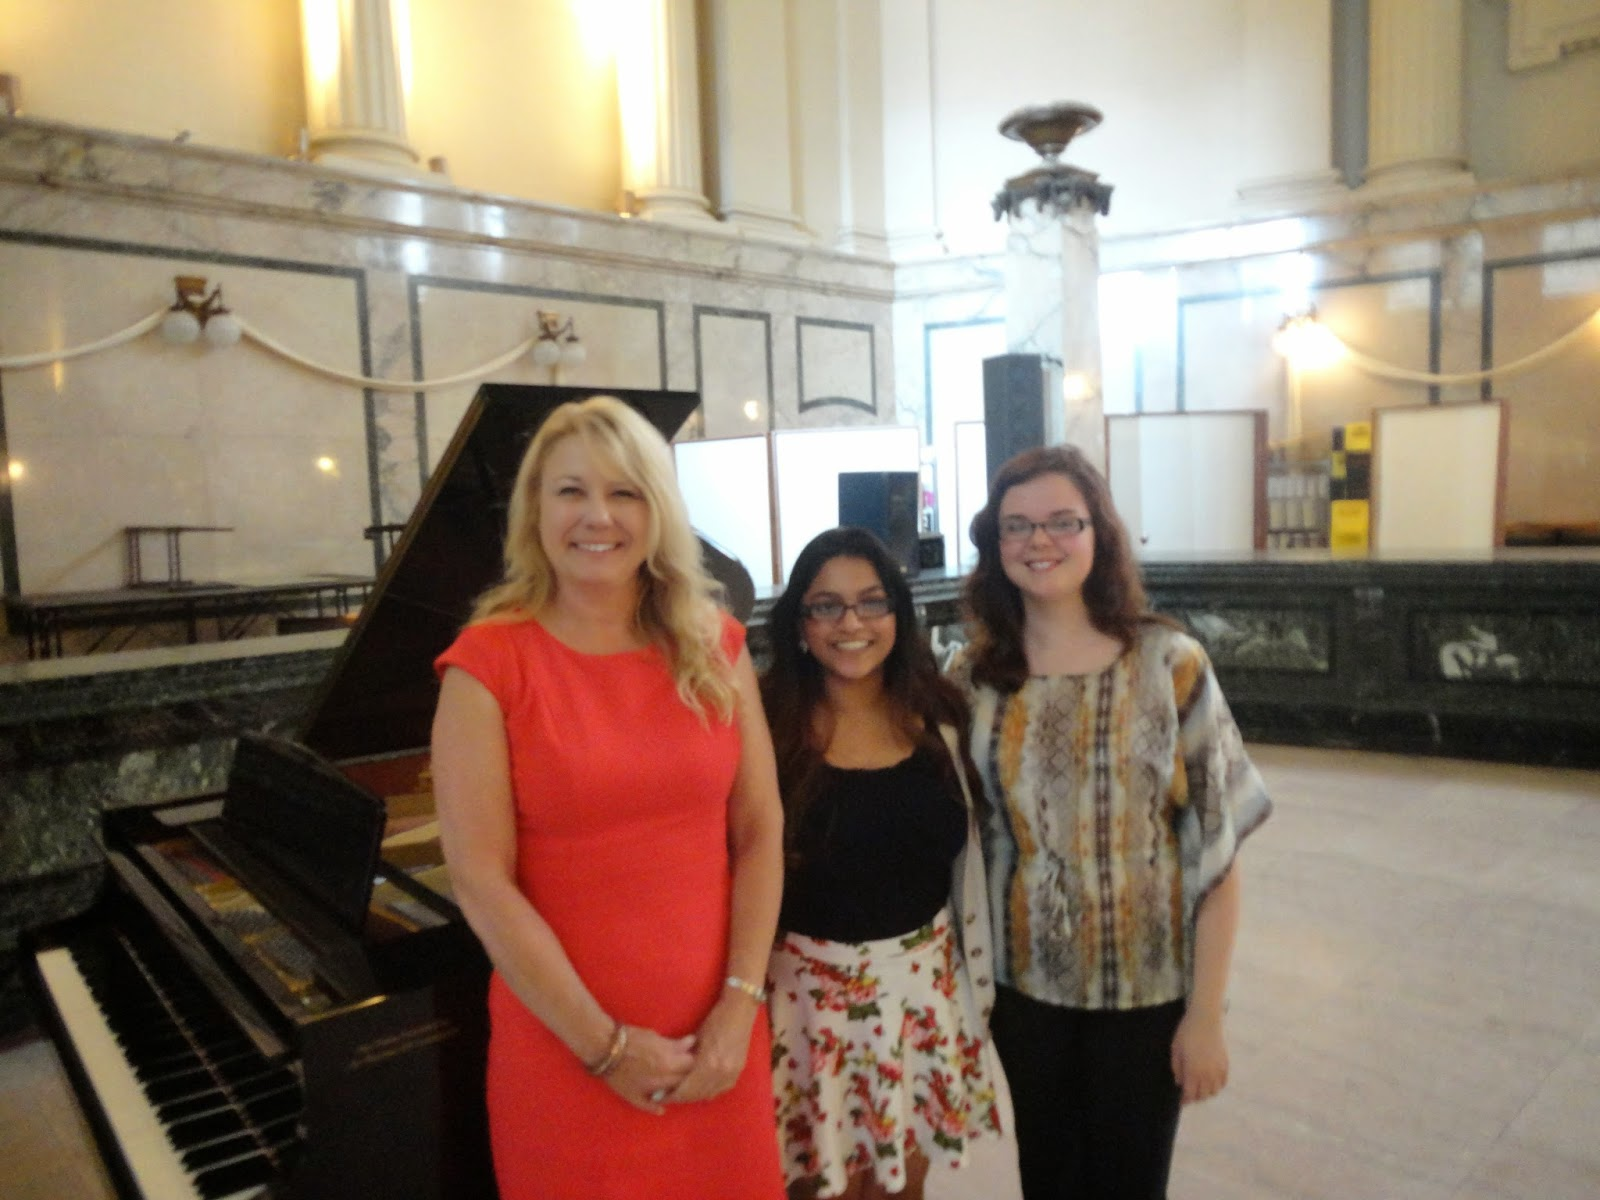 HW Executive Director Cindy Tugwell, Roshanie, and Laura at the Millennium Centre.